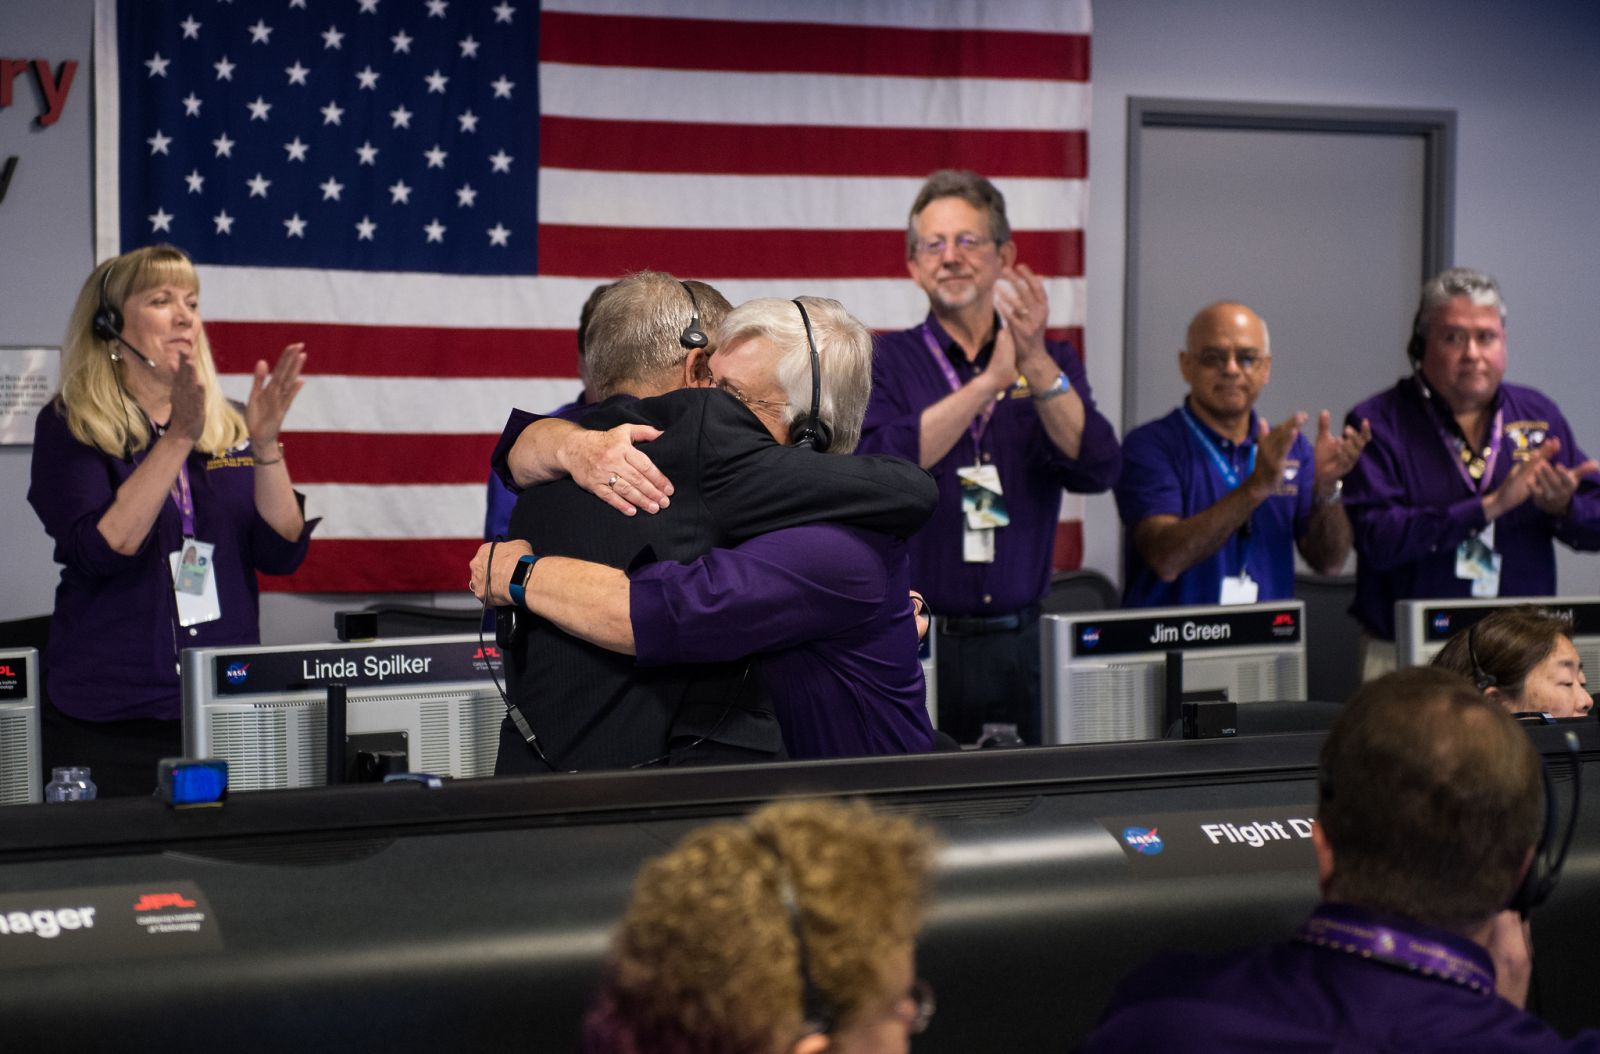 Earl Maize, left and Julie Webster embrace after Cassini plunged into Saturn. Photo Credit: Joel Kowsky / NASA